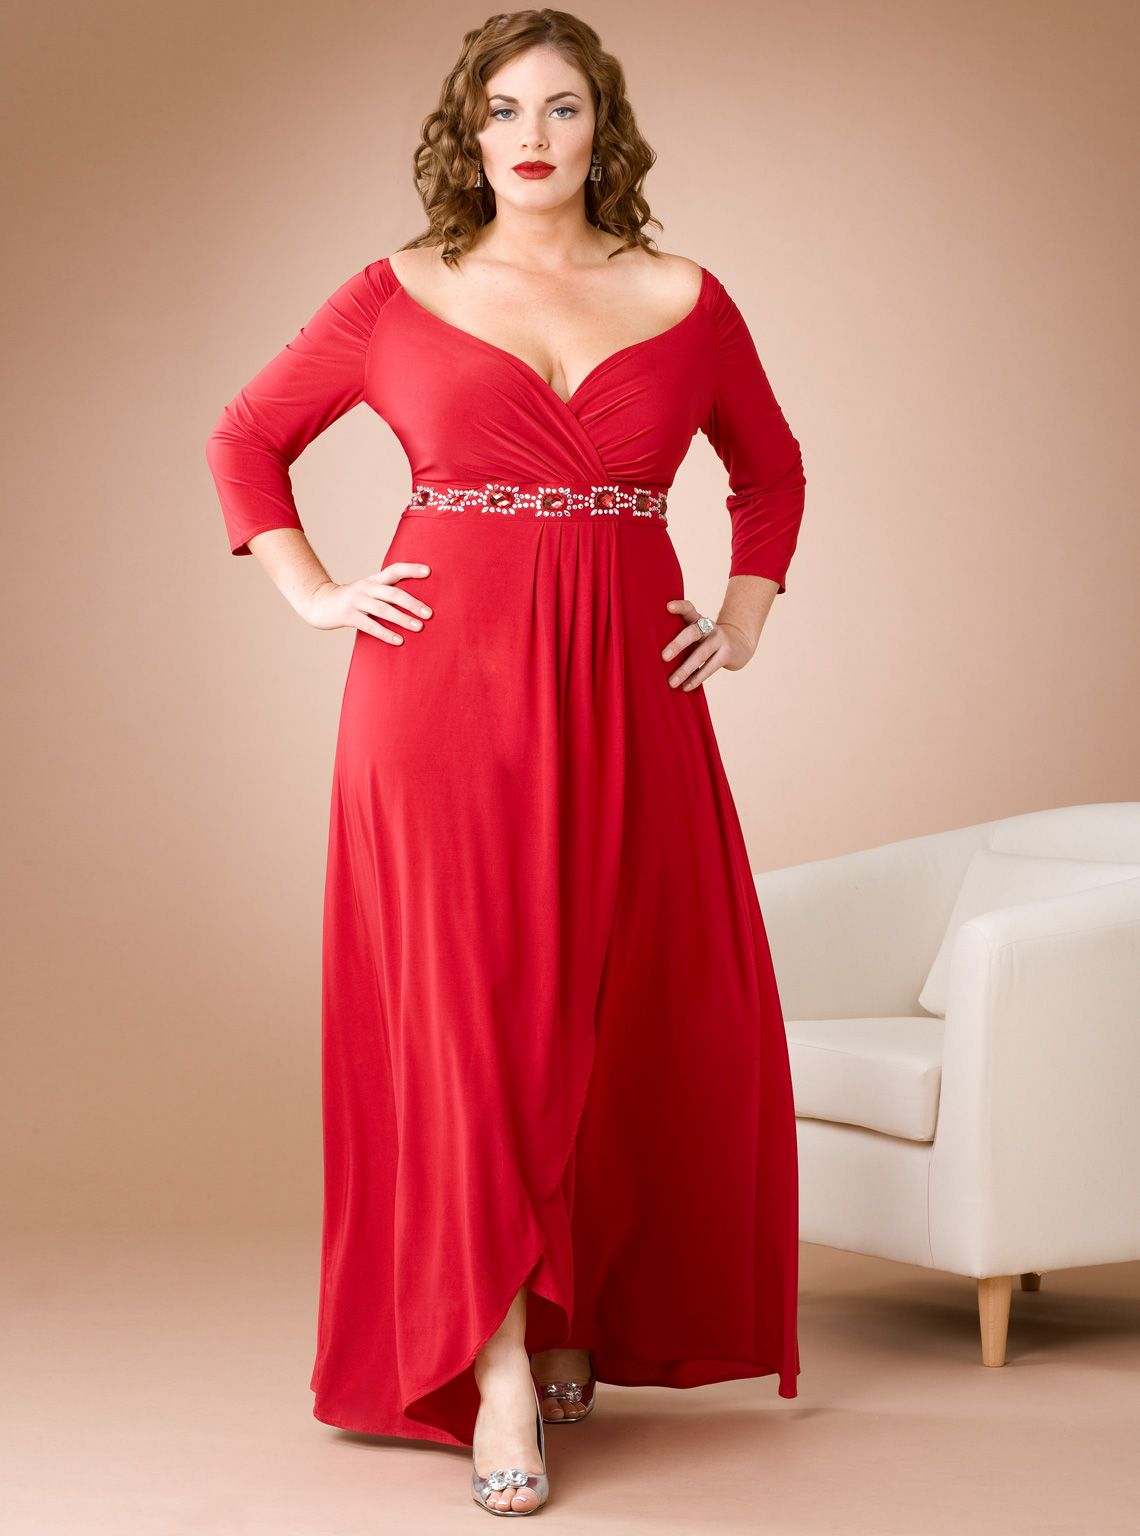 829f0b534ea1a so beautiful a plus size women. there is a very nice dating site for BBW